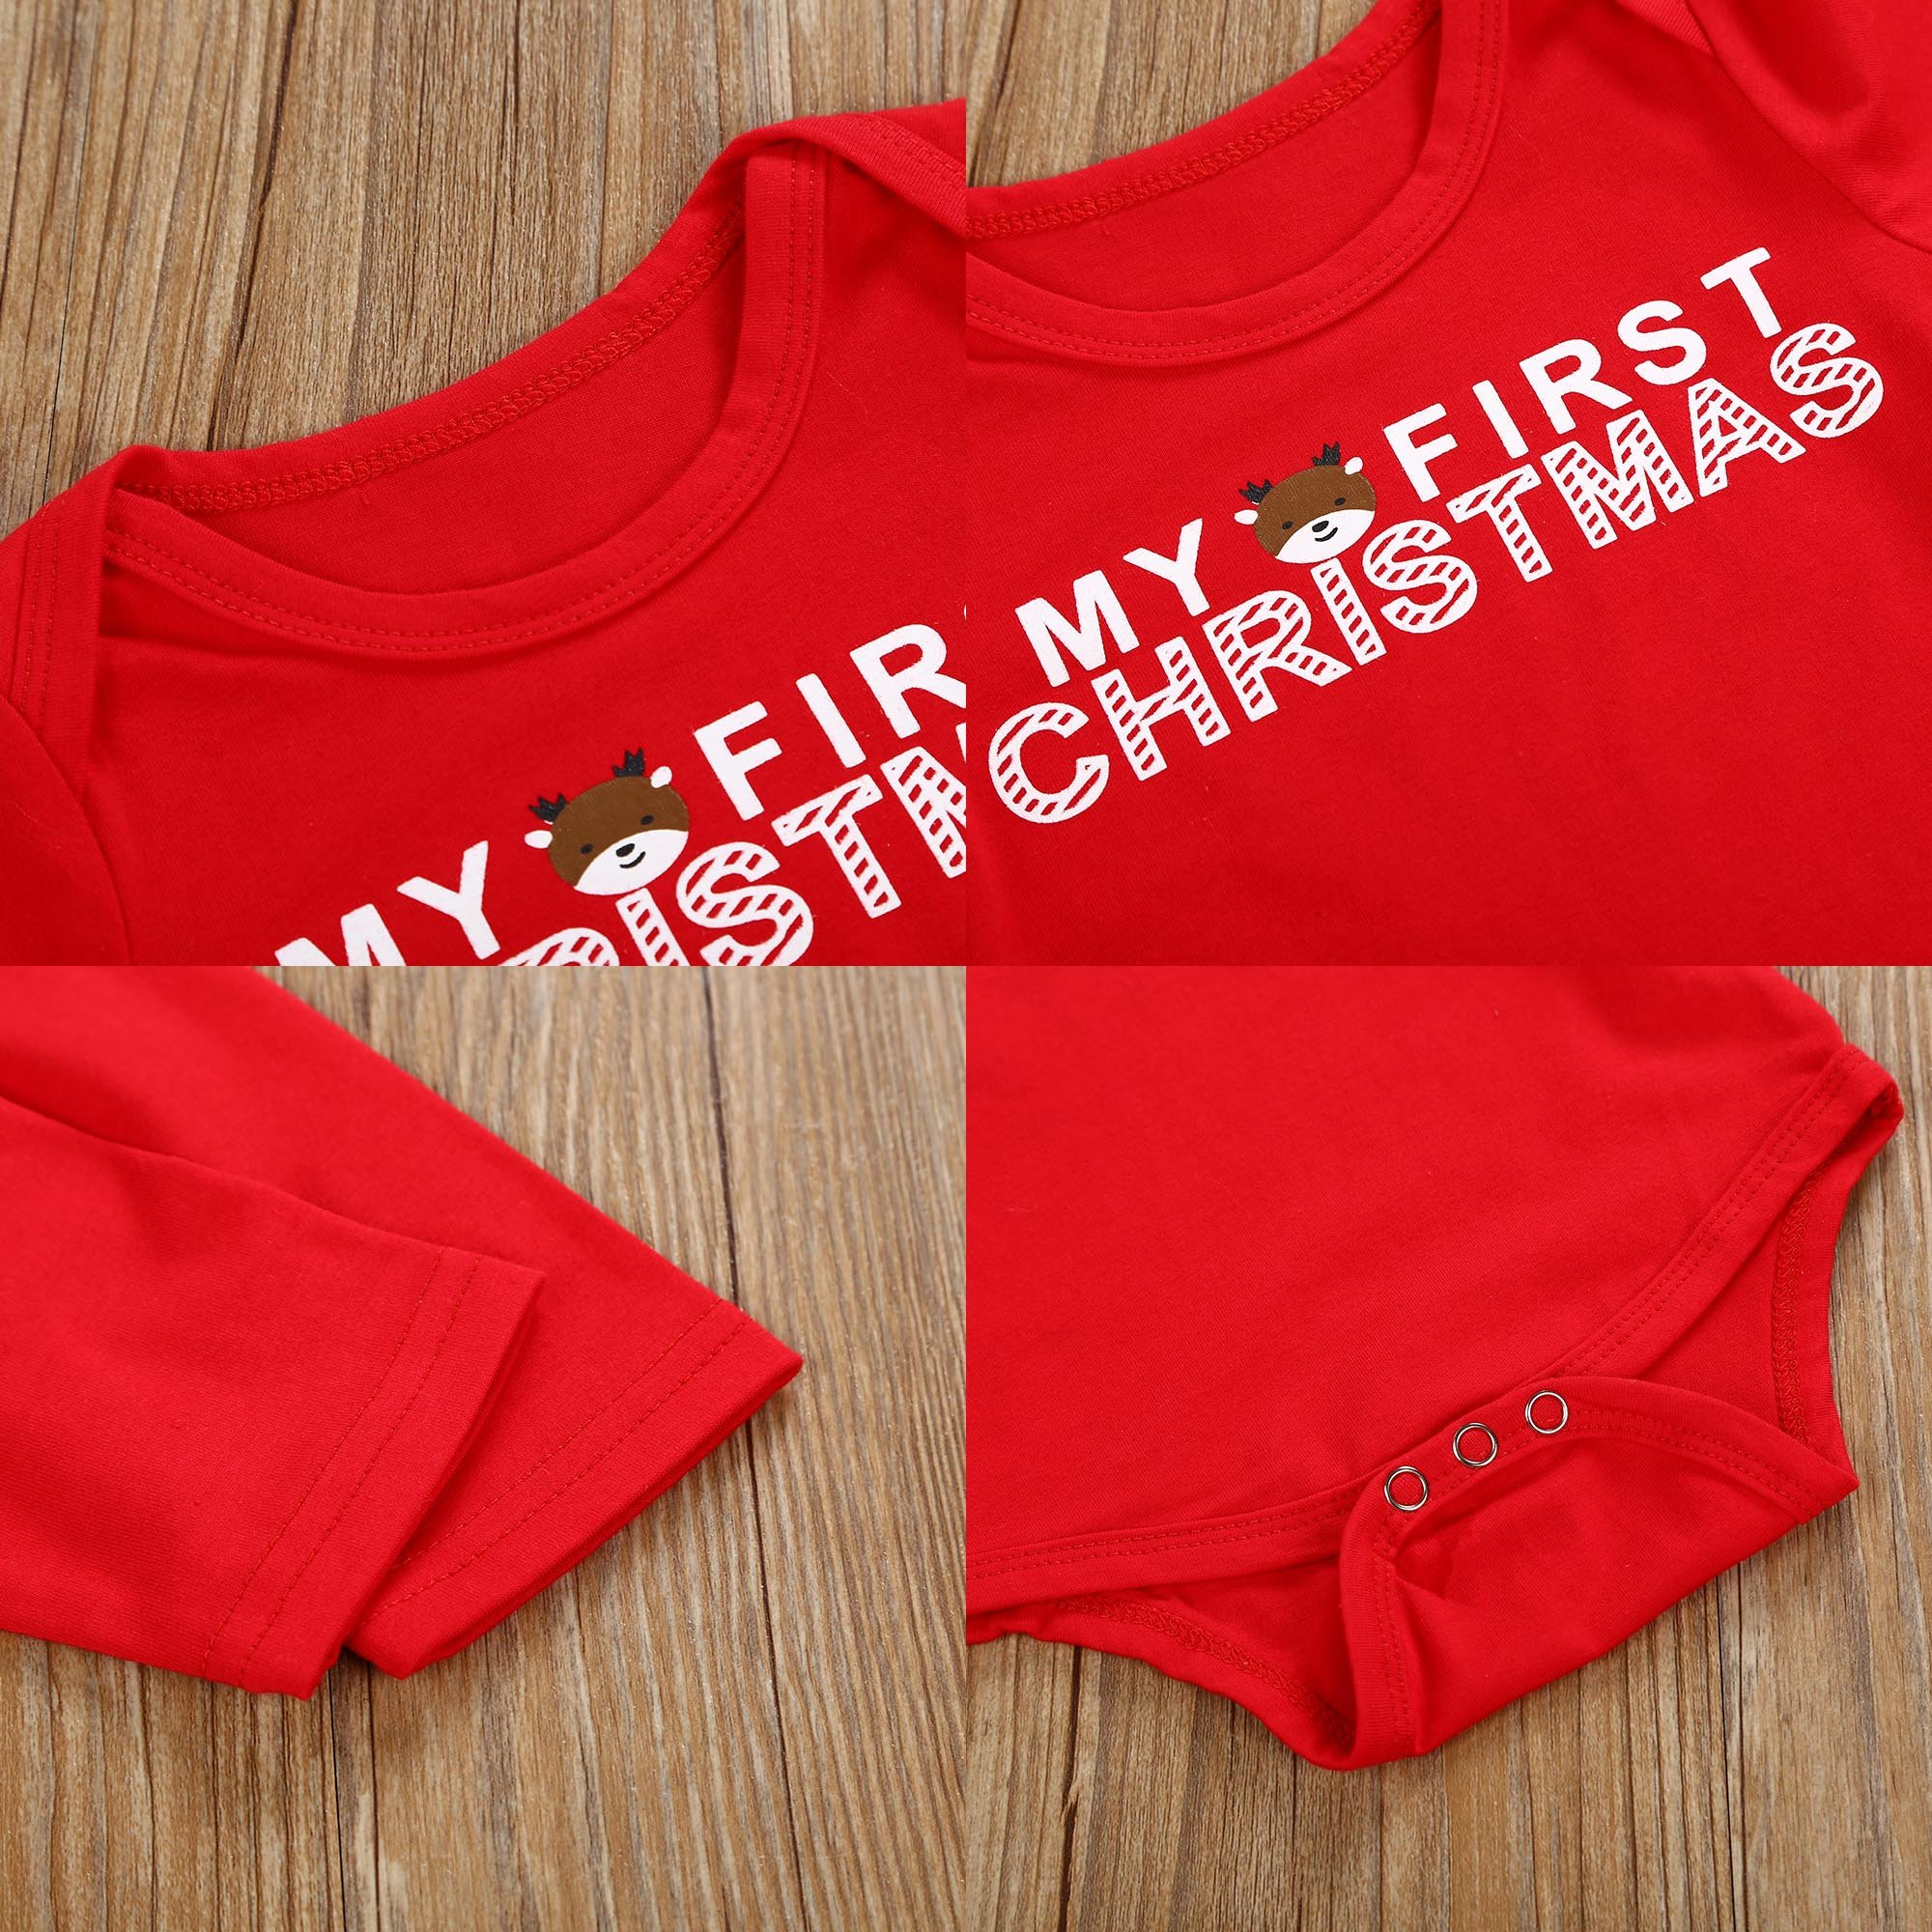 Christmas 4Pcs Outfit Set Baby Girls Boys My First Christmas Rompers(0-3 Months) by Von kilizo (Image #5)